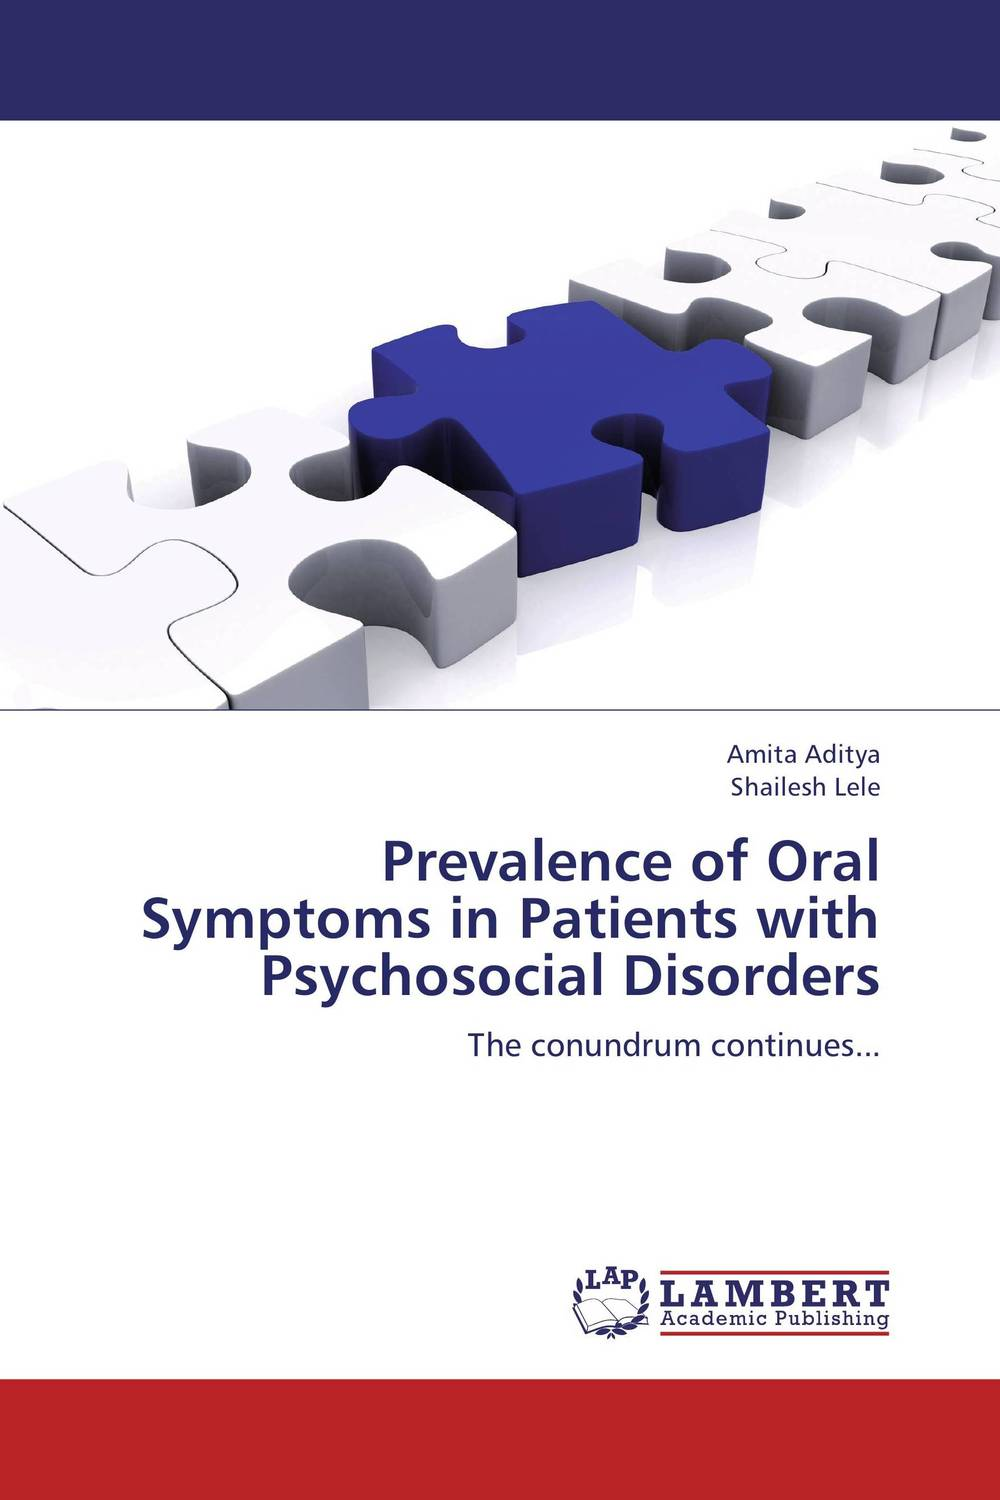 Prevalence of Oral Symptoms in Patients with Psychosocial Disorders paramjit singh and kennath j arul temporomandibular joint in health and disorders